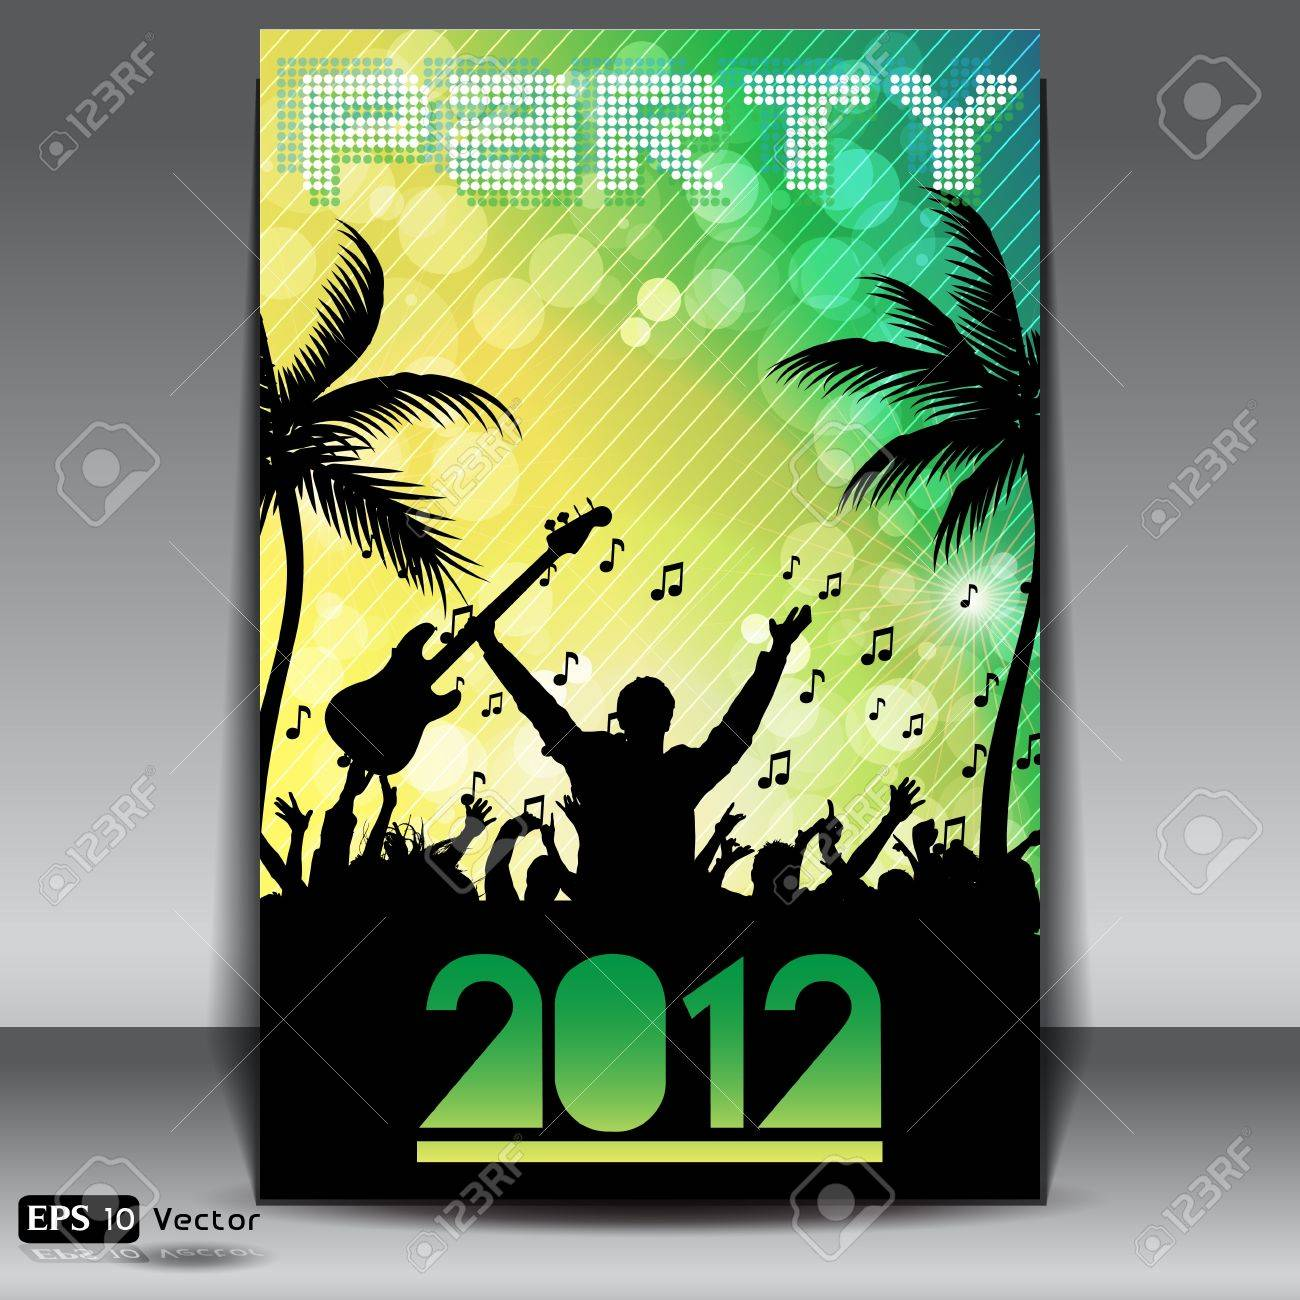 Summer Beach Party Flyer with Dancing Young People Stock Vector - 14648832